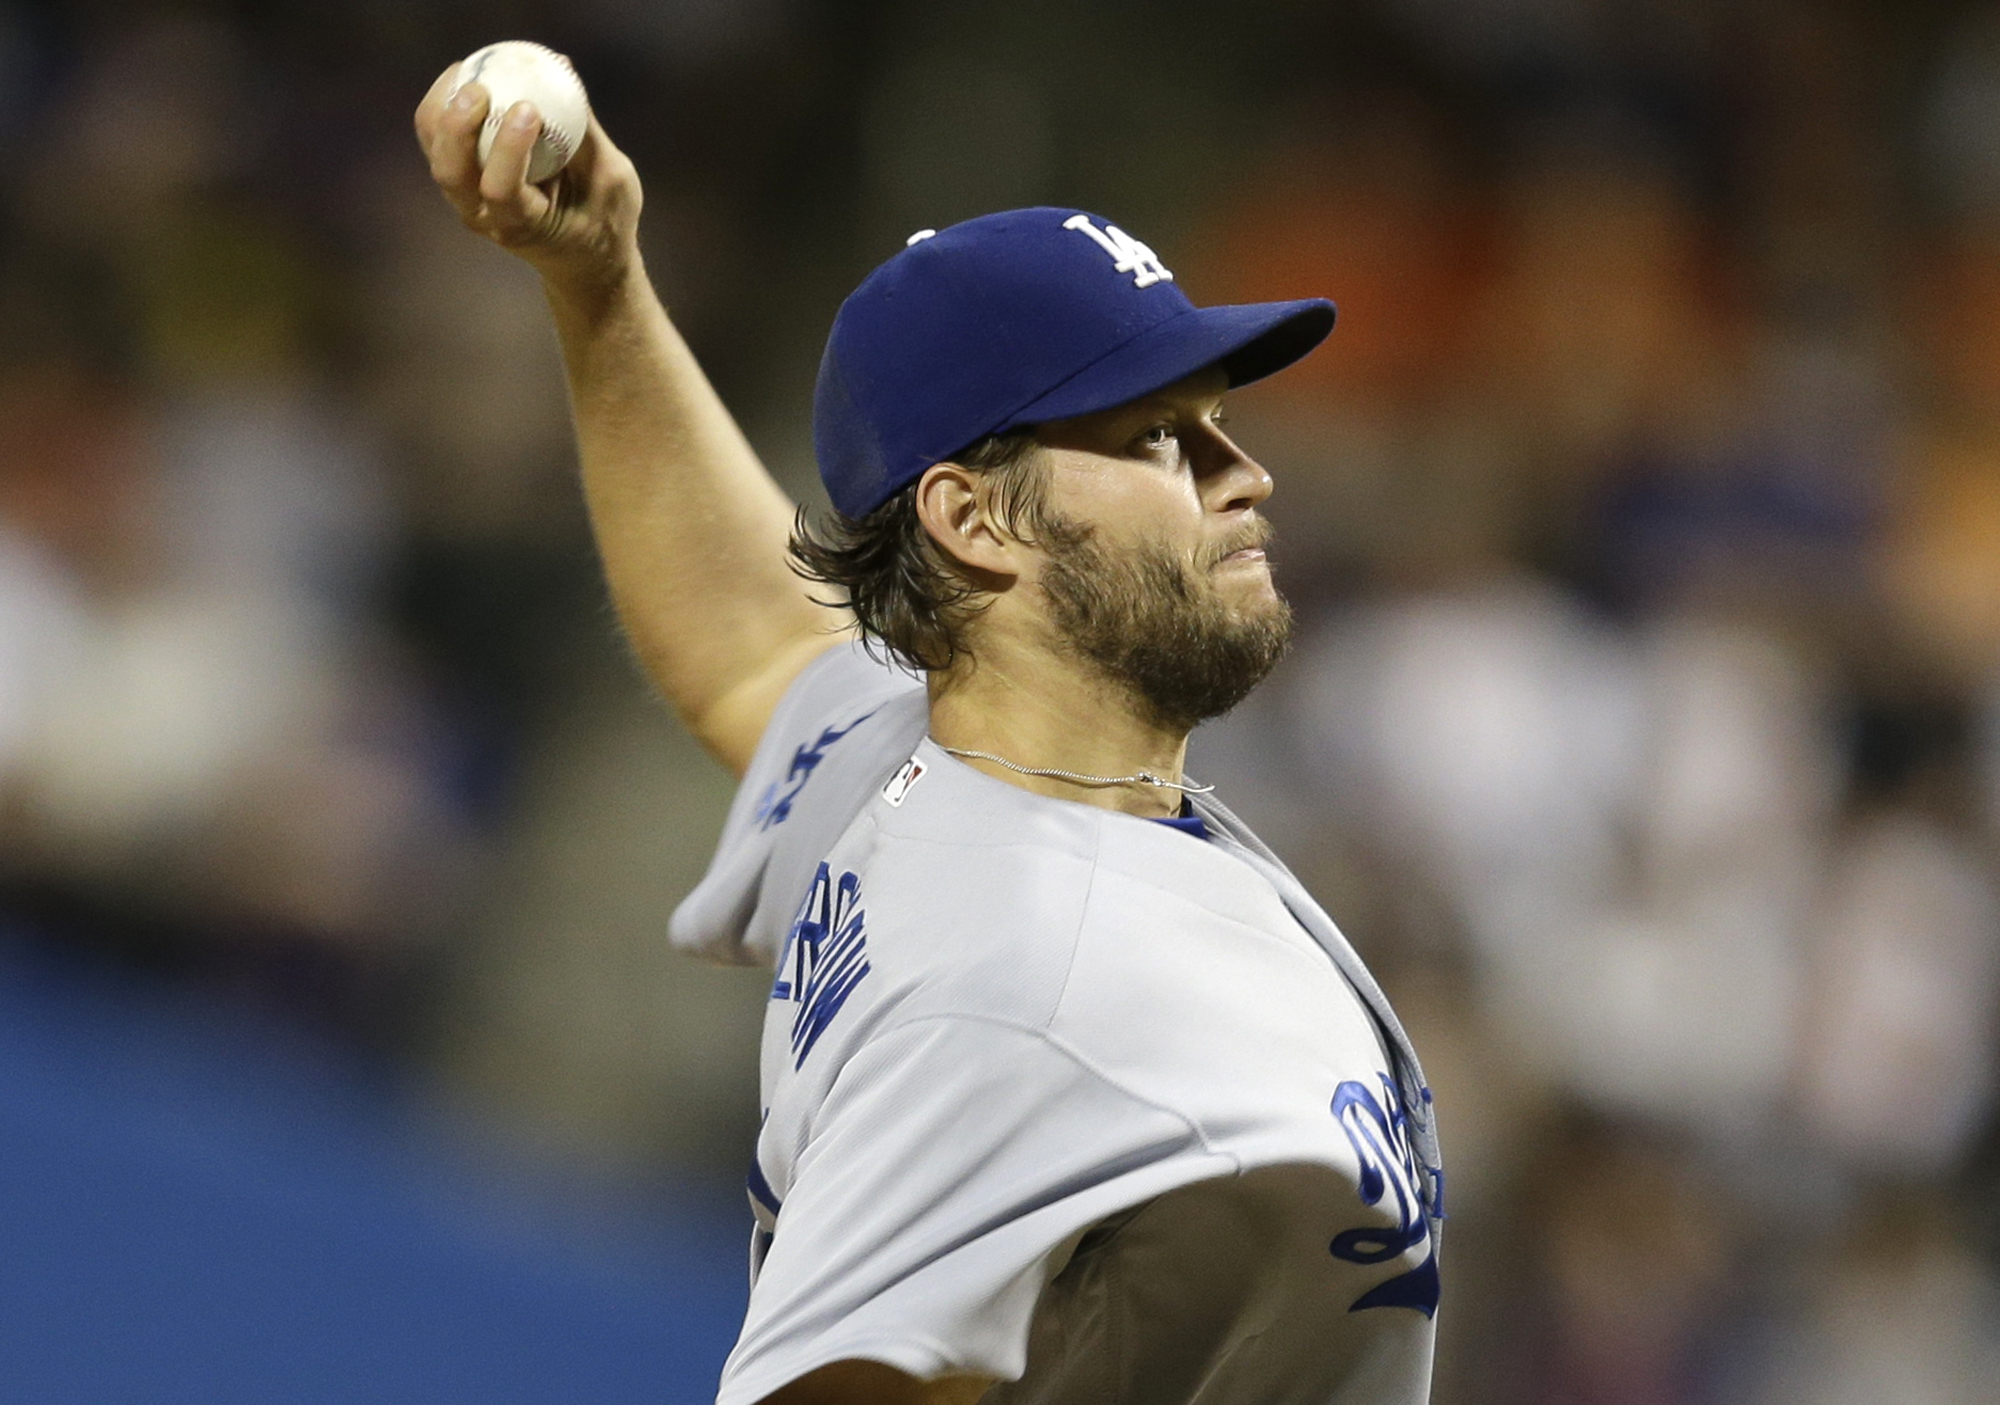 Los Angeles Dodgers starting pitcher Clayton Kershaw throws during the third inning of the baseball game against the New York Mets at Citi Field, Sunday, May 29, 2016 in New York. (AP Photo/Seth Wenig)